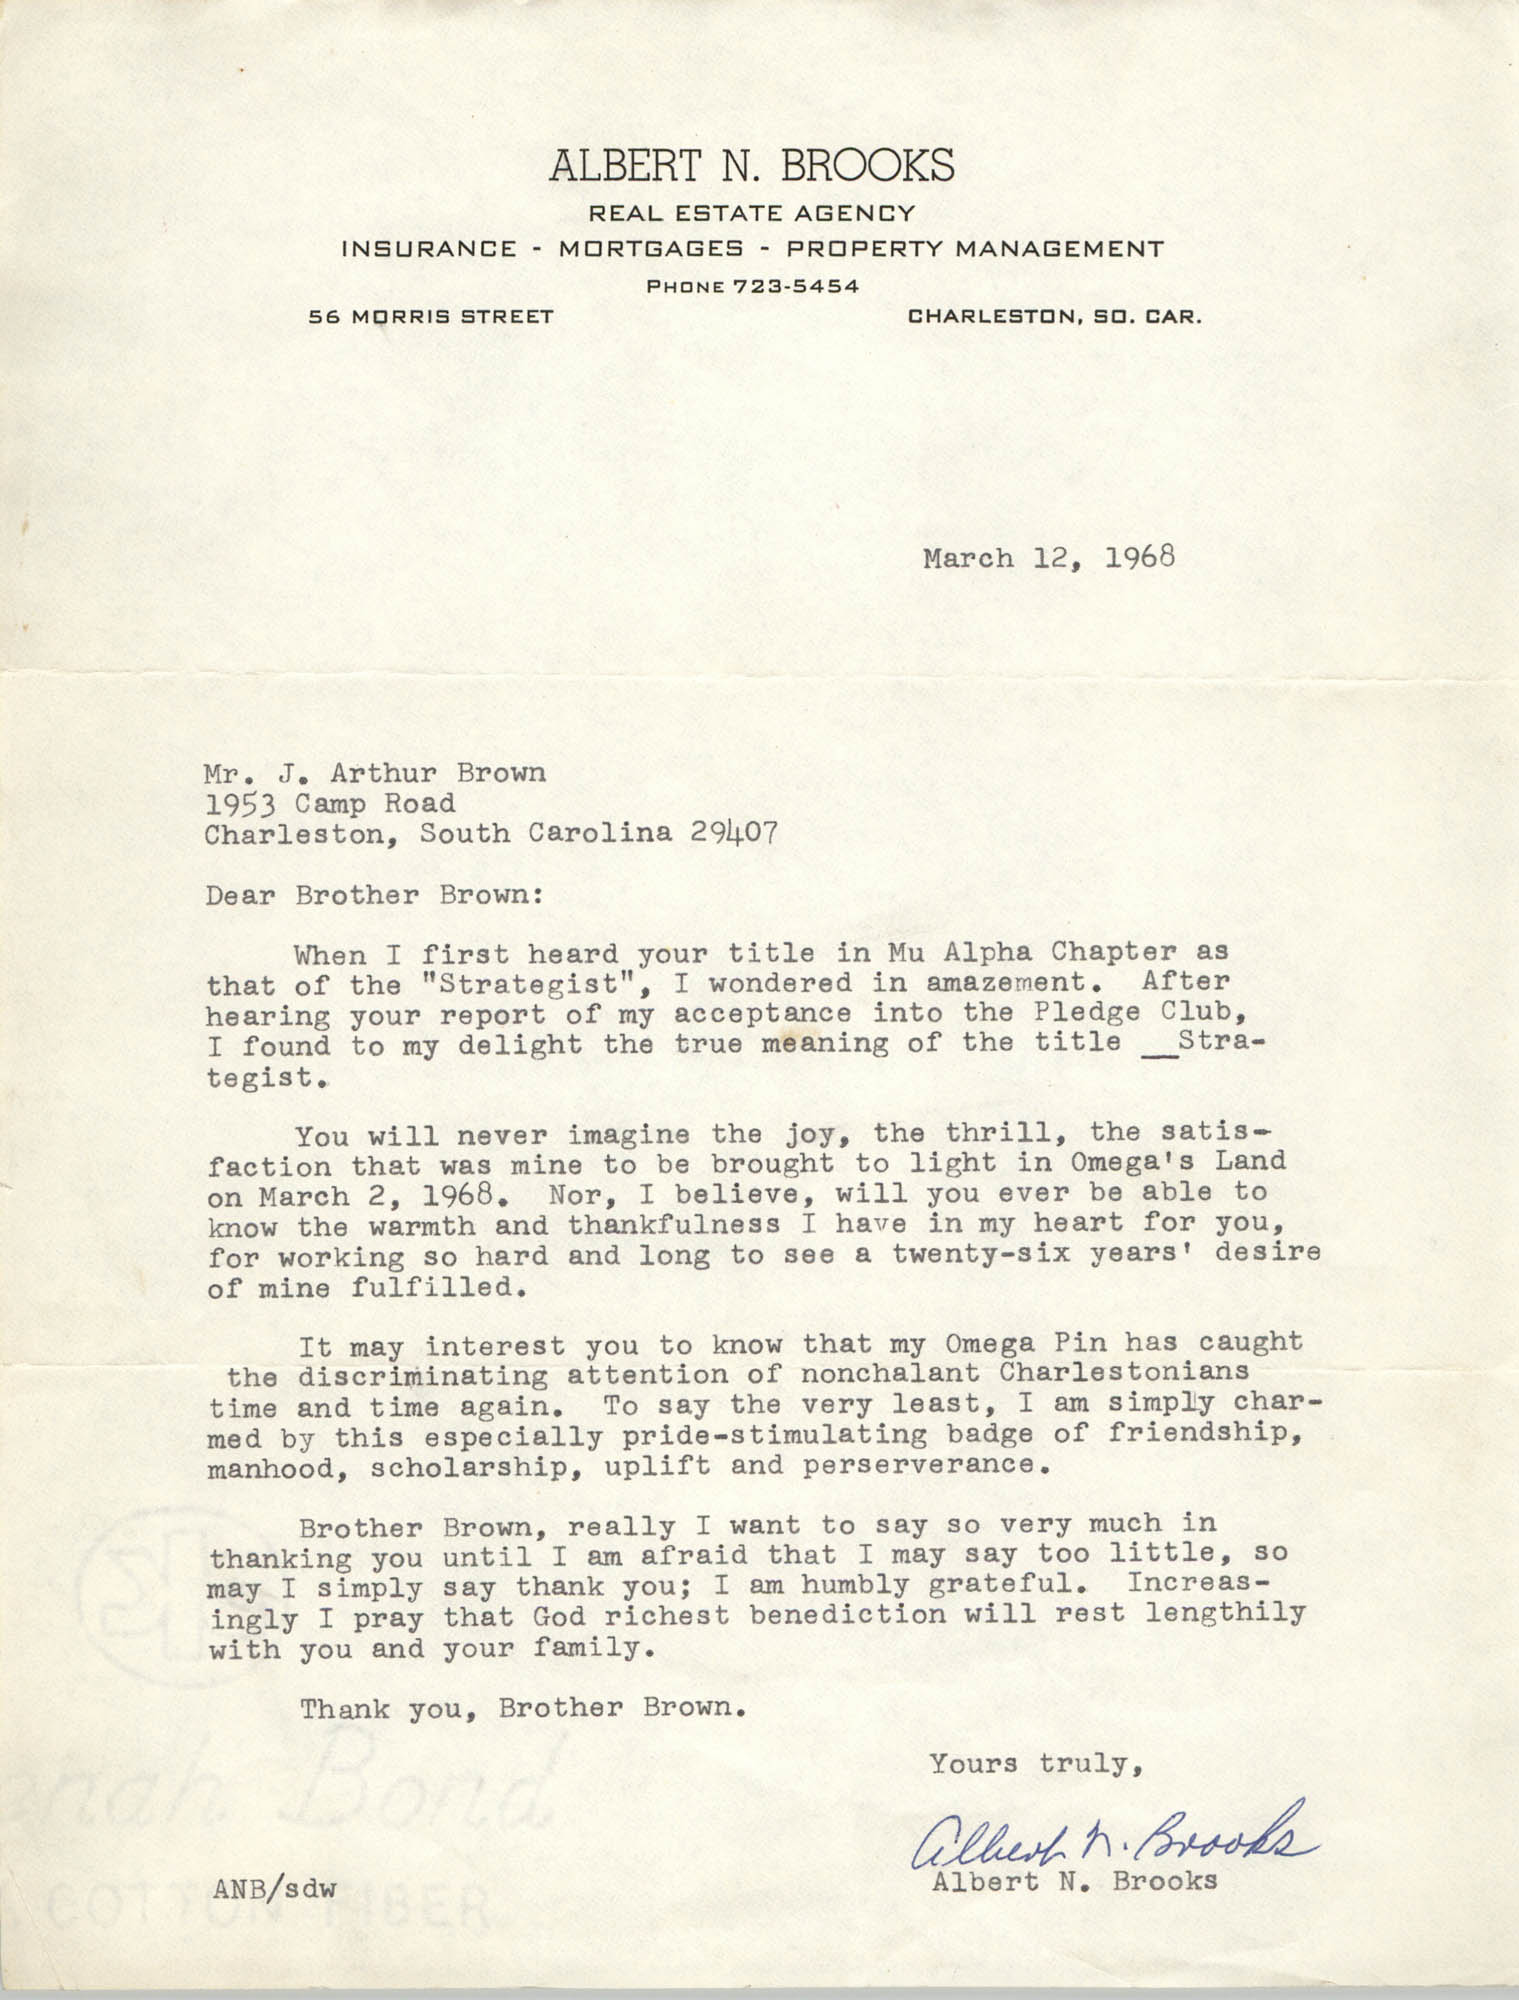 Letter from Albert N. Brooks to J. Arthur Brown, March 12, 1968